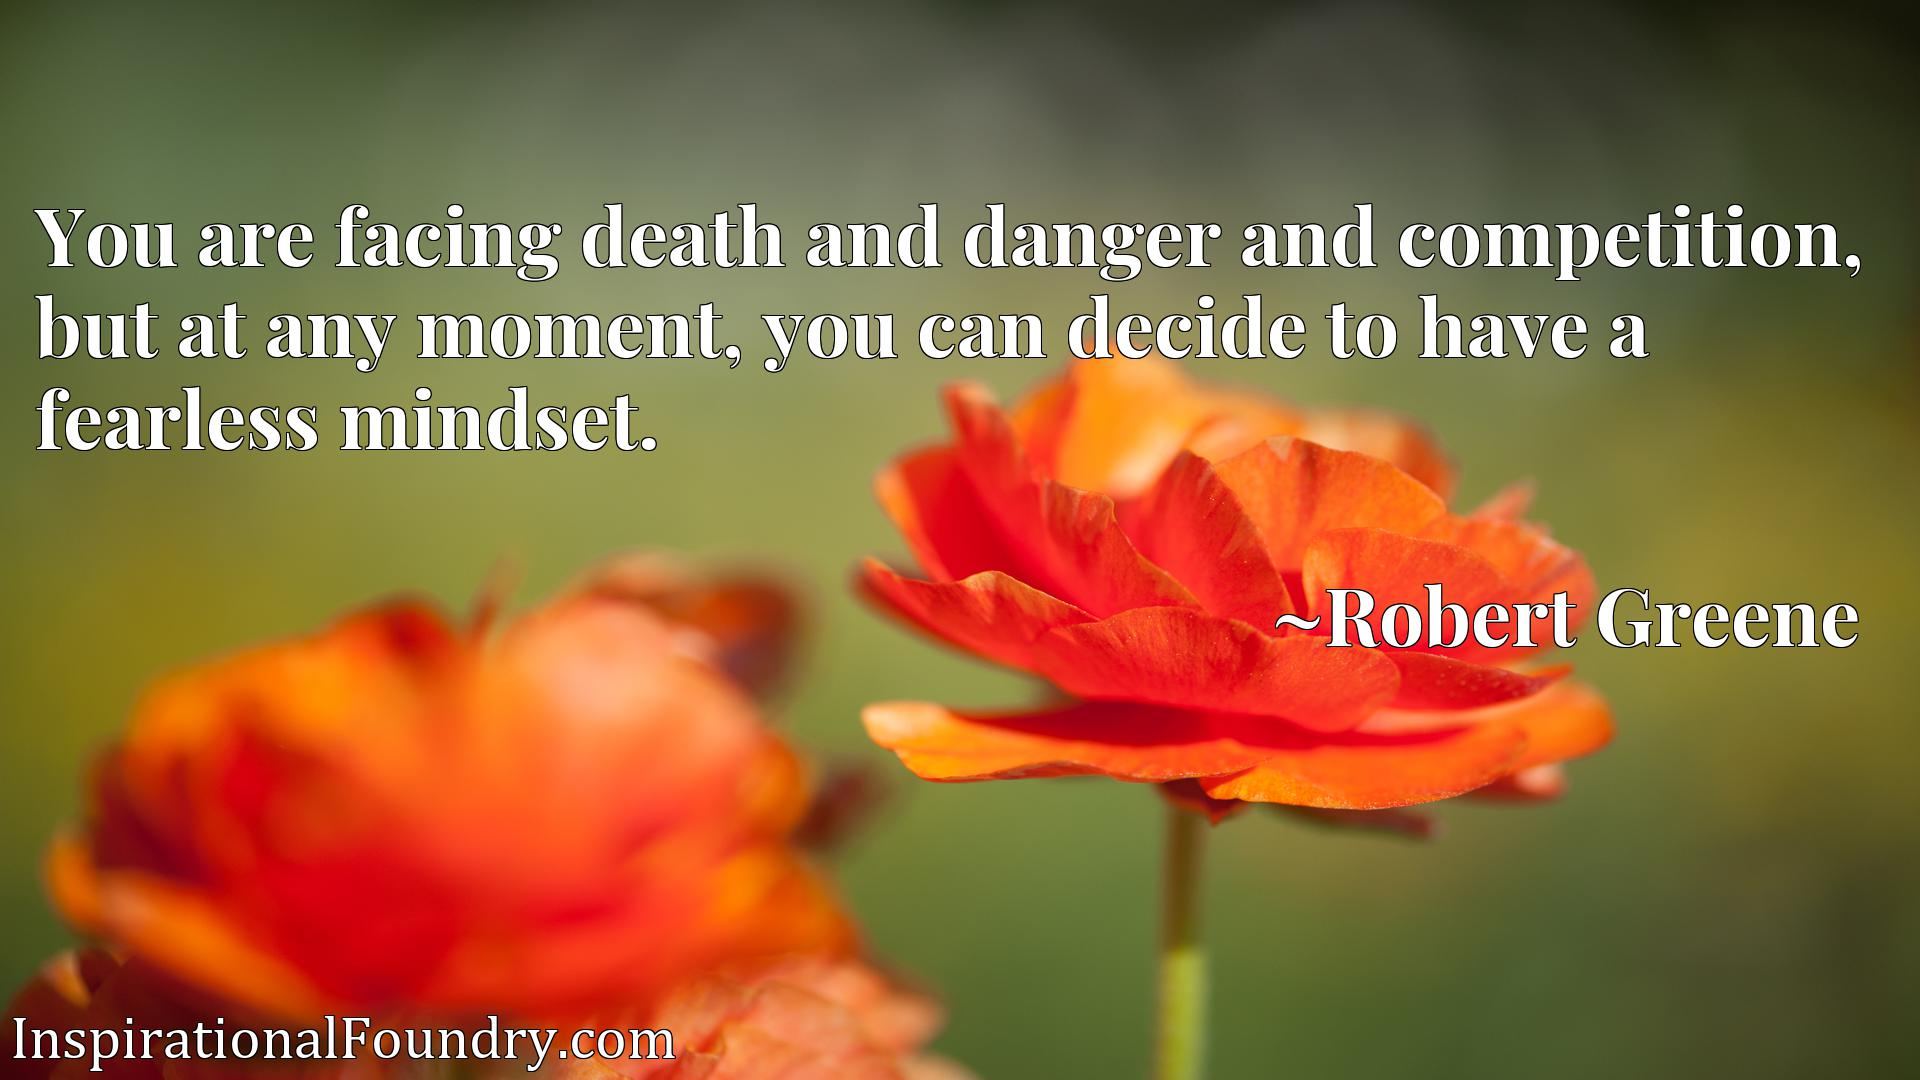 You are facing death and danger and competition, but at any moment, you can decide to have a fearless mindset.